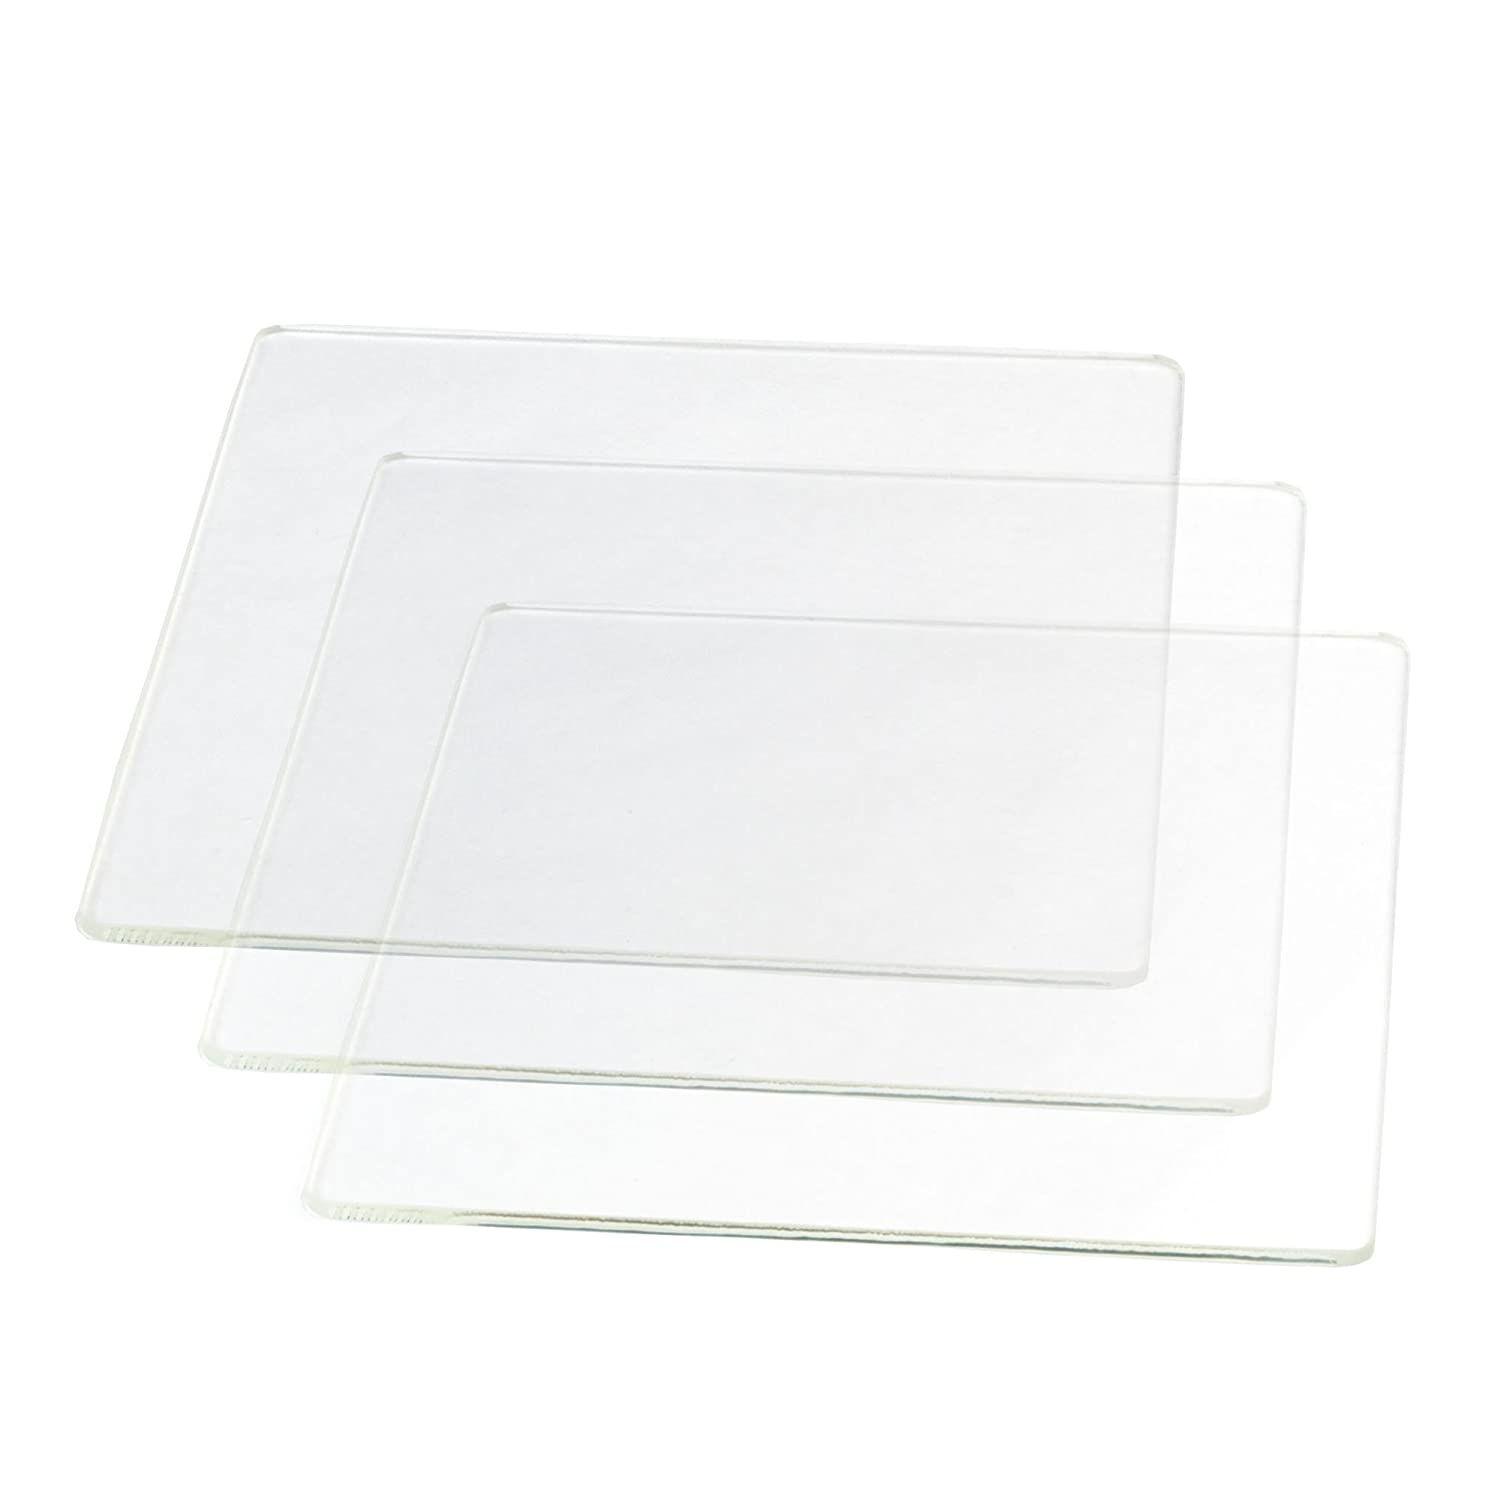 Borosilicate Glass Surface sale New products world's highest quality popular Platform for H479 H480 3D Afinia Prin